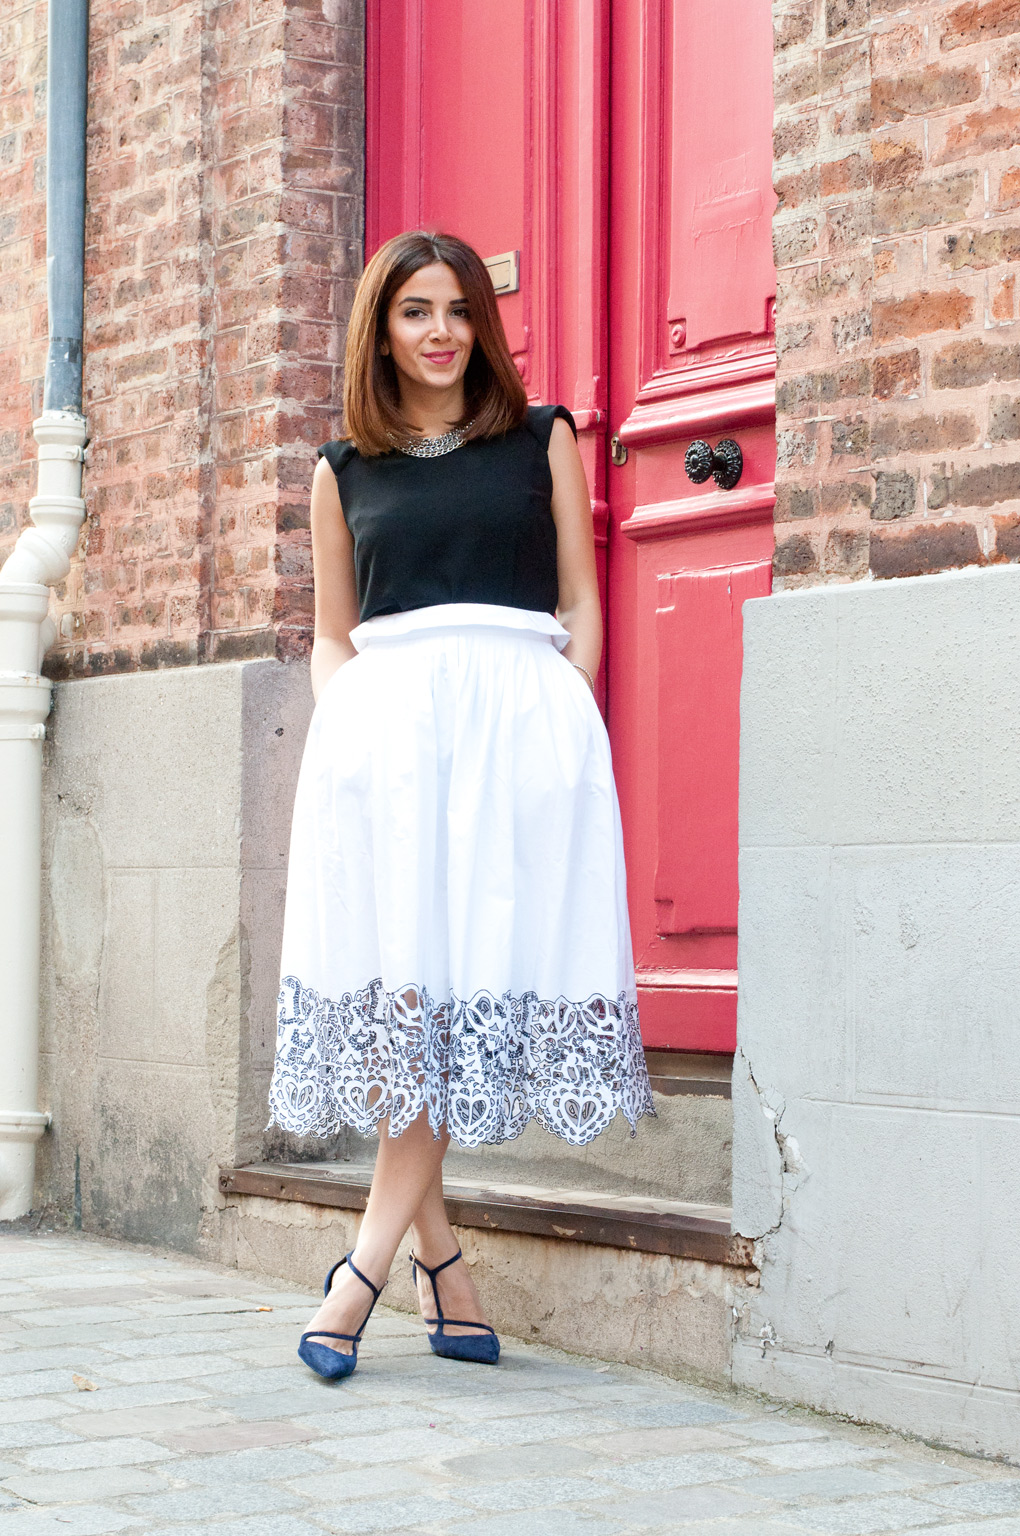 Lyla_Loves_Fashion_Meadham_kirchhoff_Skirt_Roger_Vivier_Heels_5848